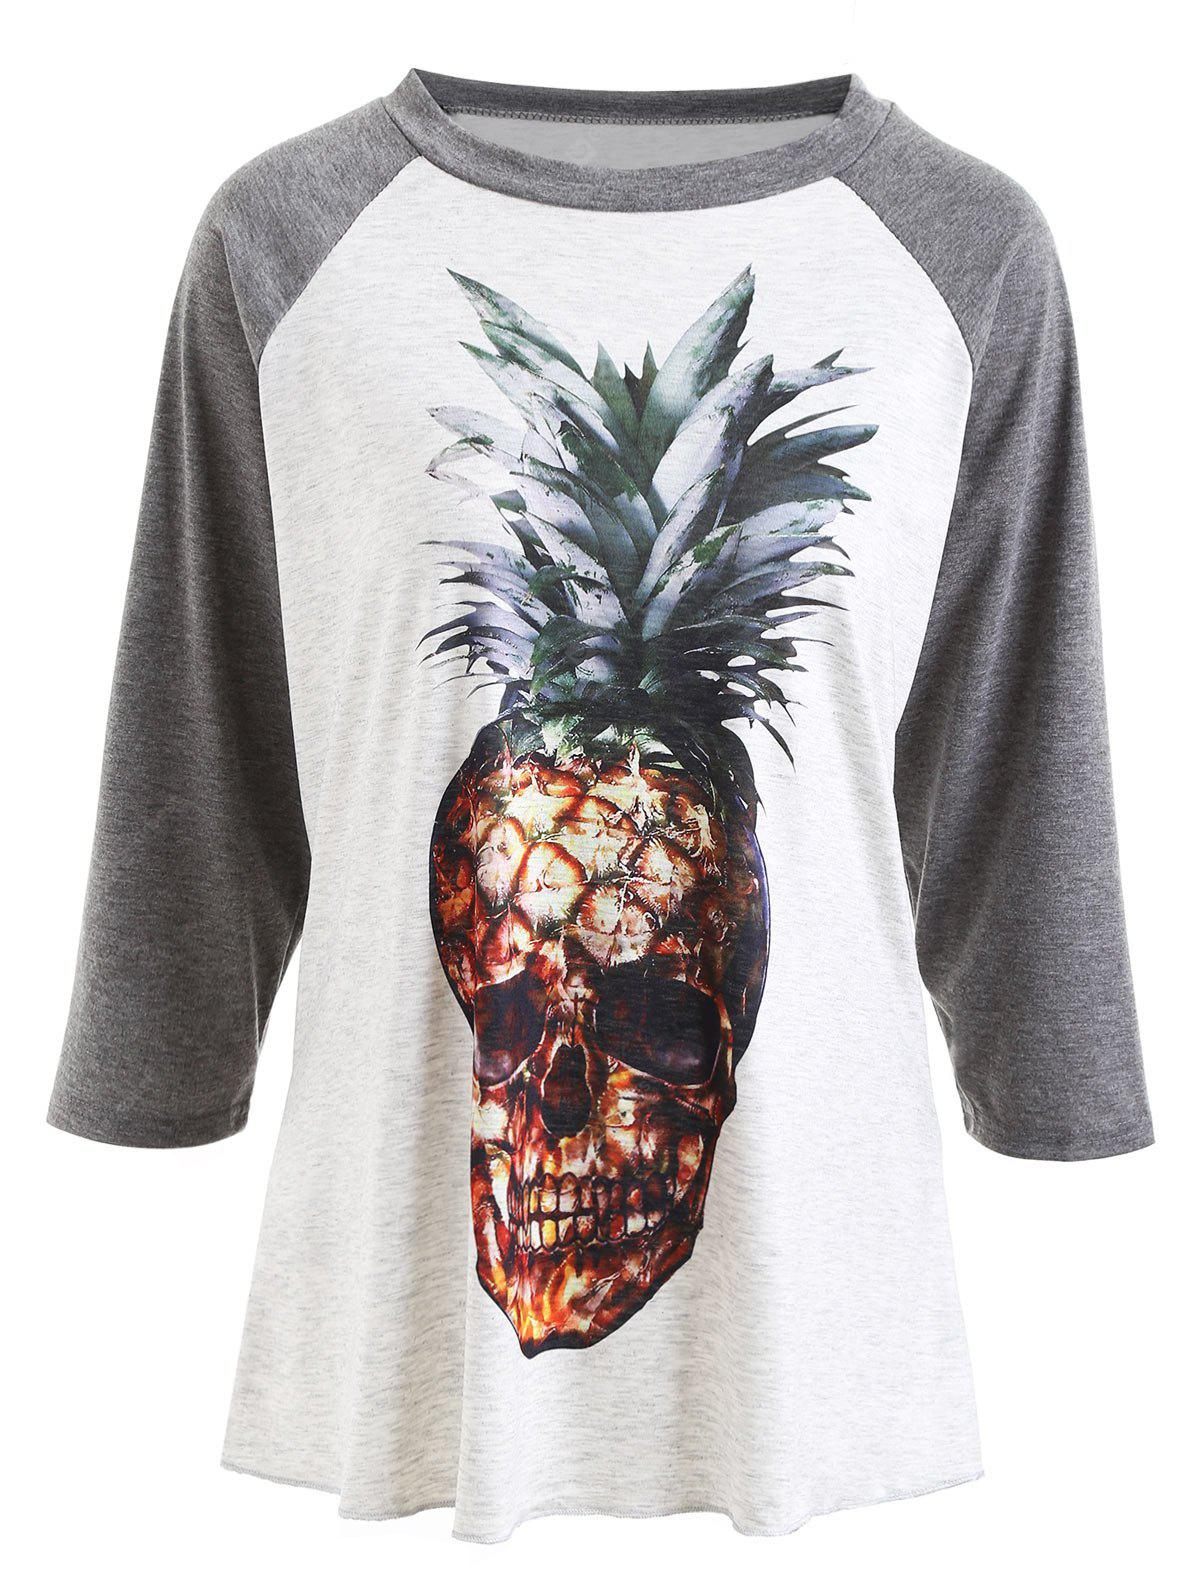 Raglan Sleeve Pineapple Skull Print T-shirt